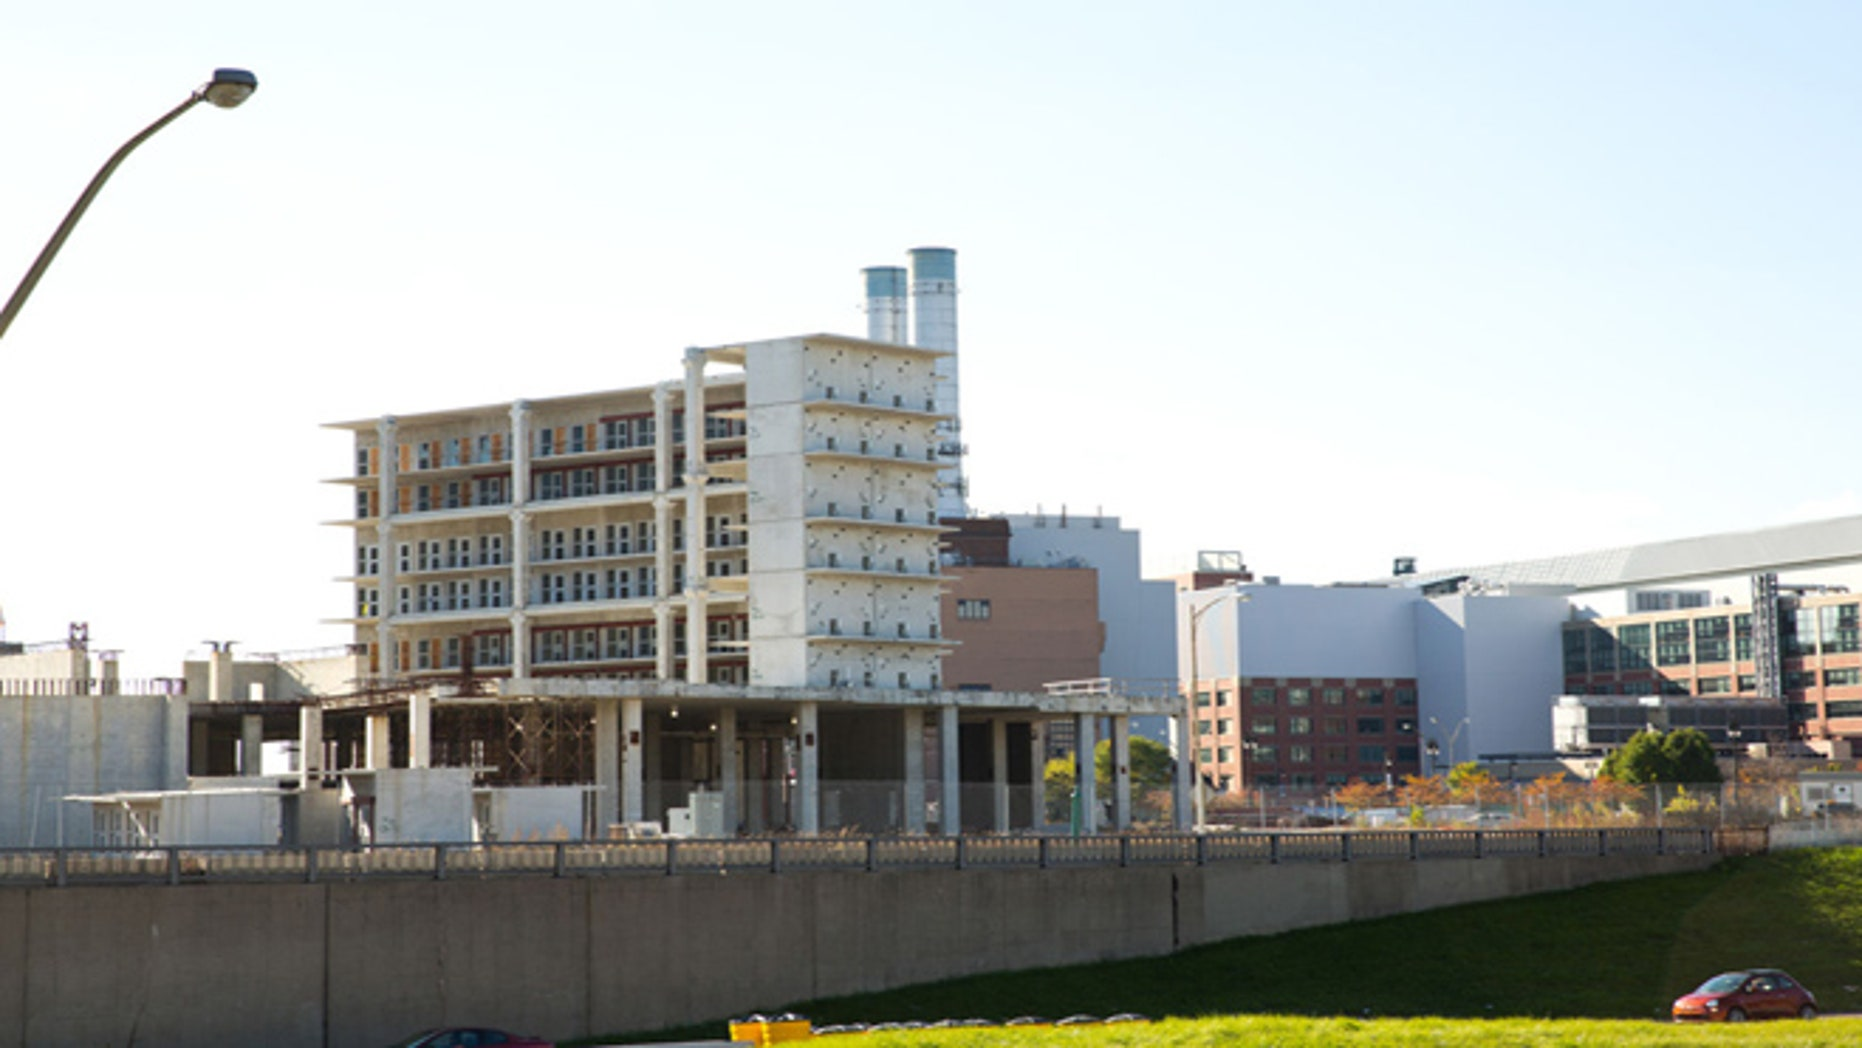 Four years after breaking ground and with construction costs totaling $151 million, the Wayne County Jail sits empty in downtown Detroit. The empty structure is costing taxpayers upwards of $1.2 million in upkeep per month. (AP)